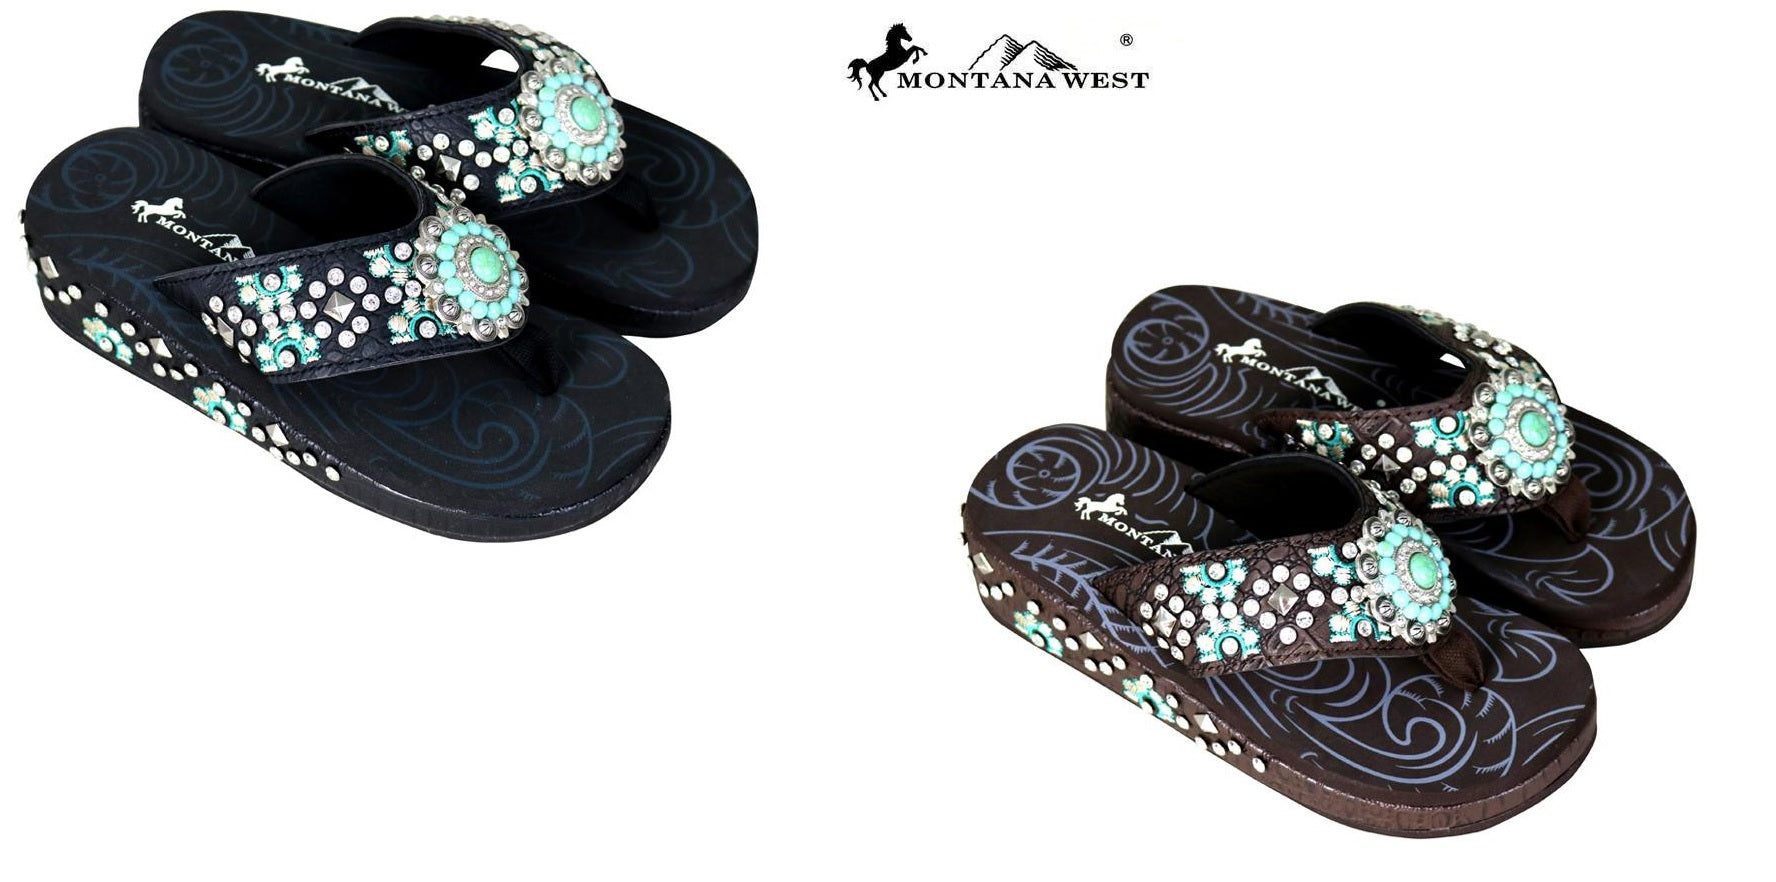 b595edfec8c8 Montana west embroidered aztec turquoise concho western flip flops brown or  black jpg 1776x882 Turquoise western